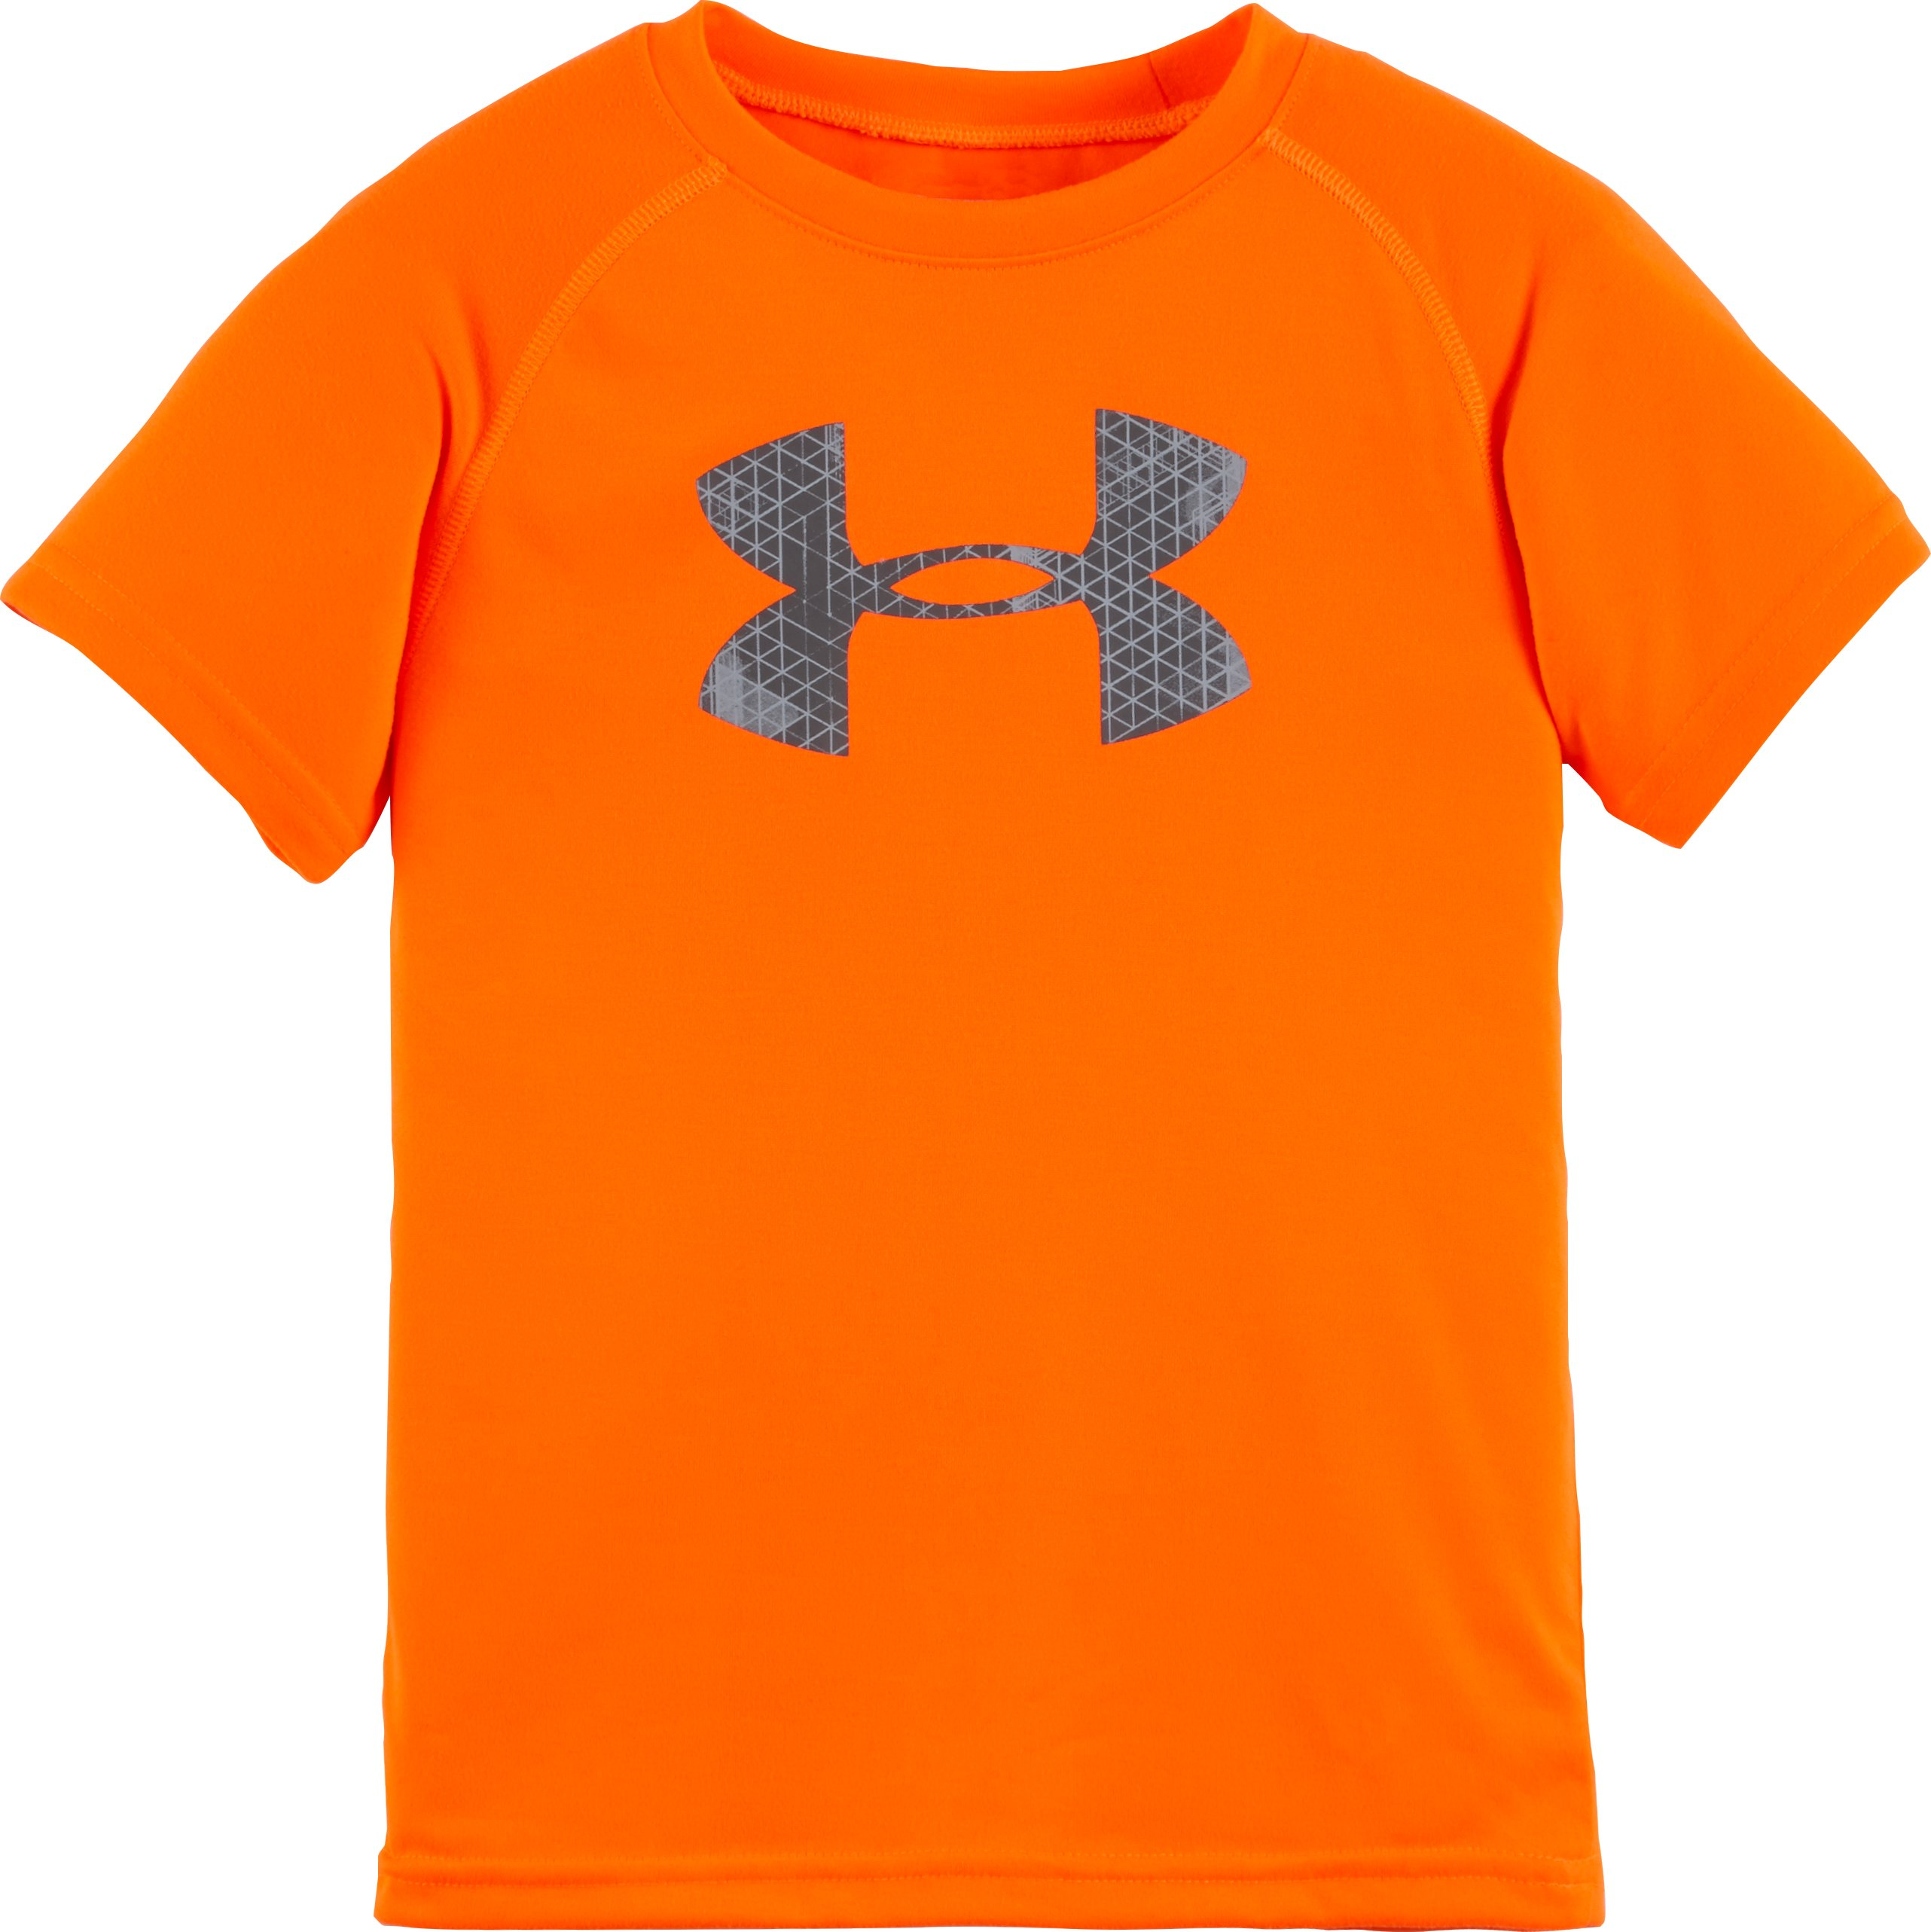 Boys' Toddler UA Hexascope Big Logo Short Sleeve T-Shirt, Blaze Orange, Laydown